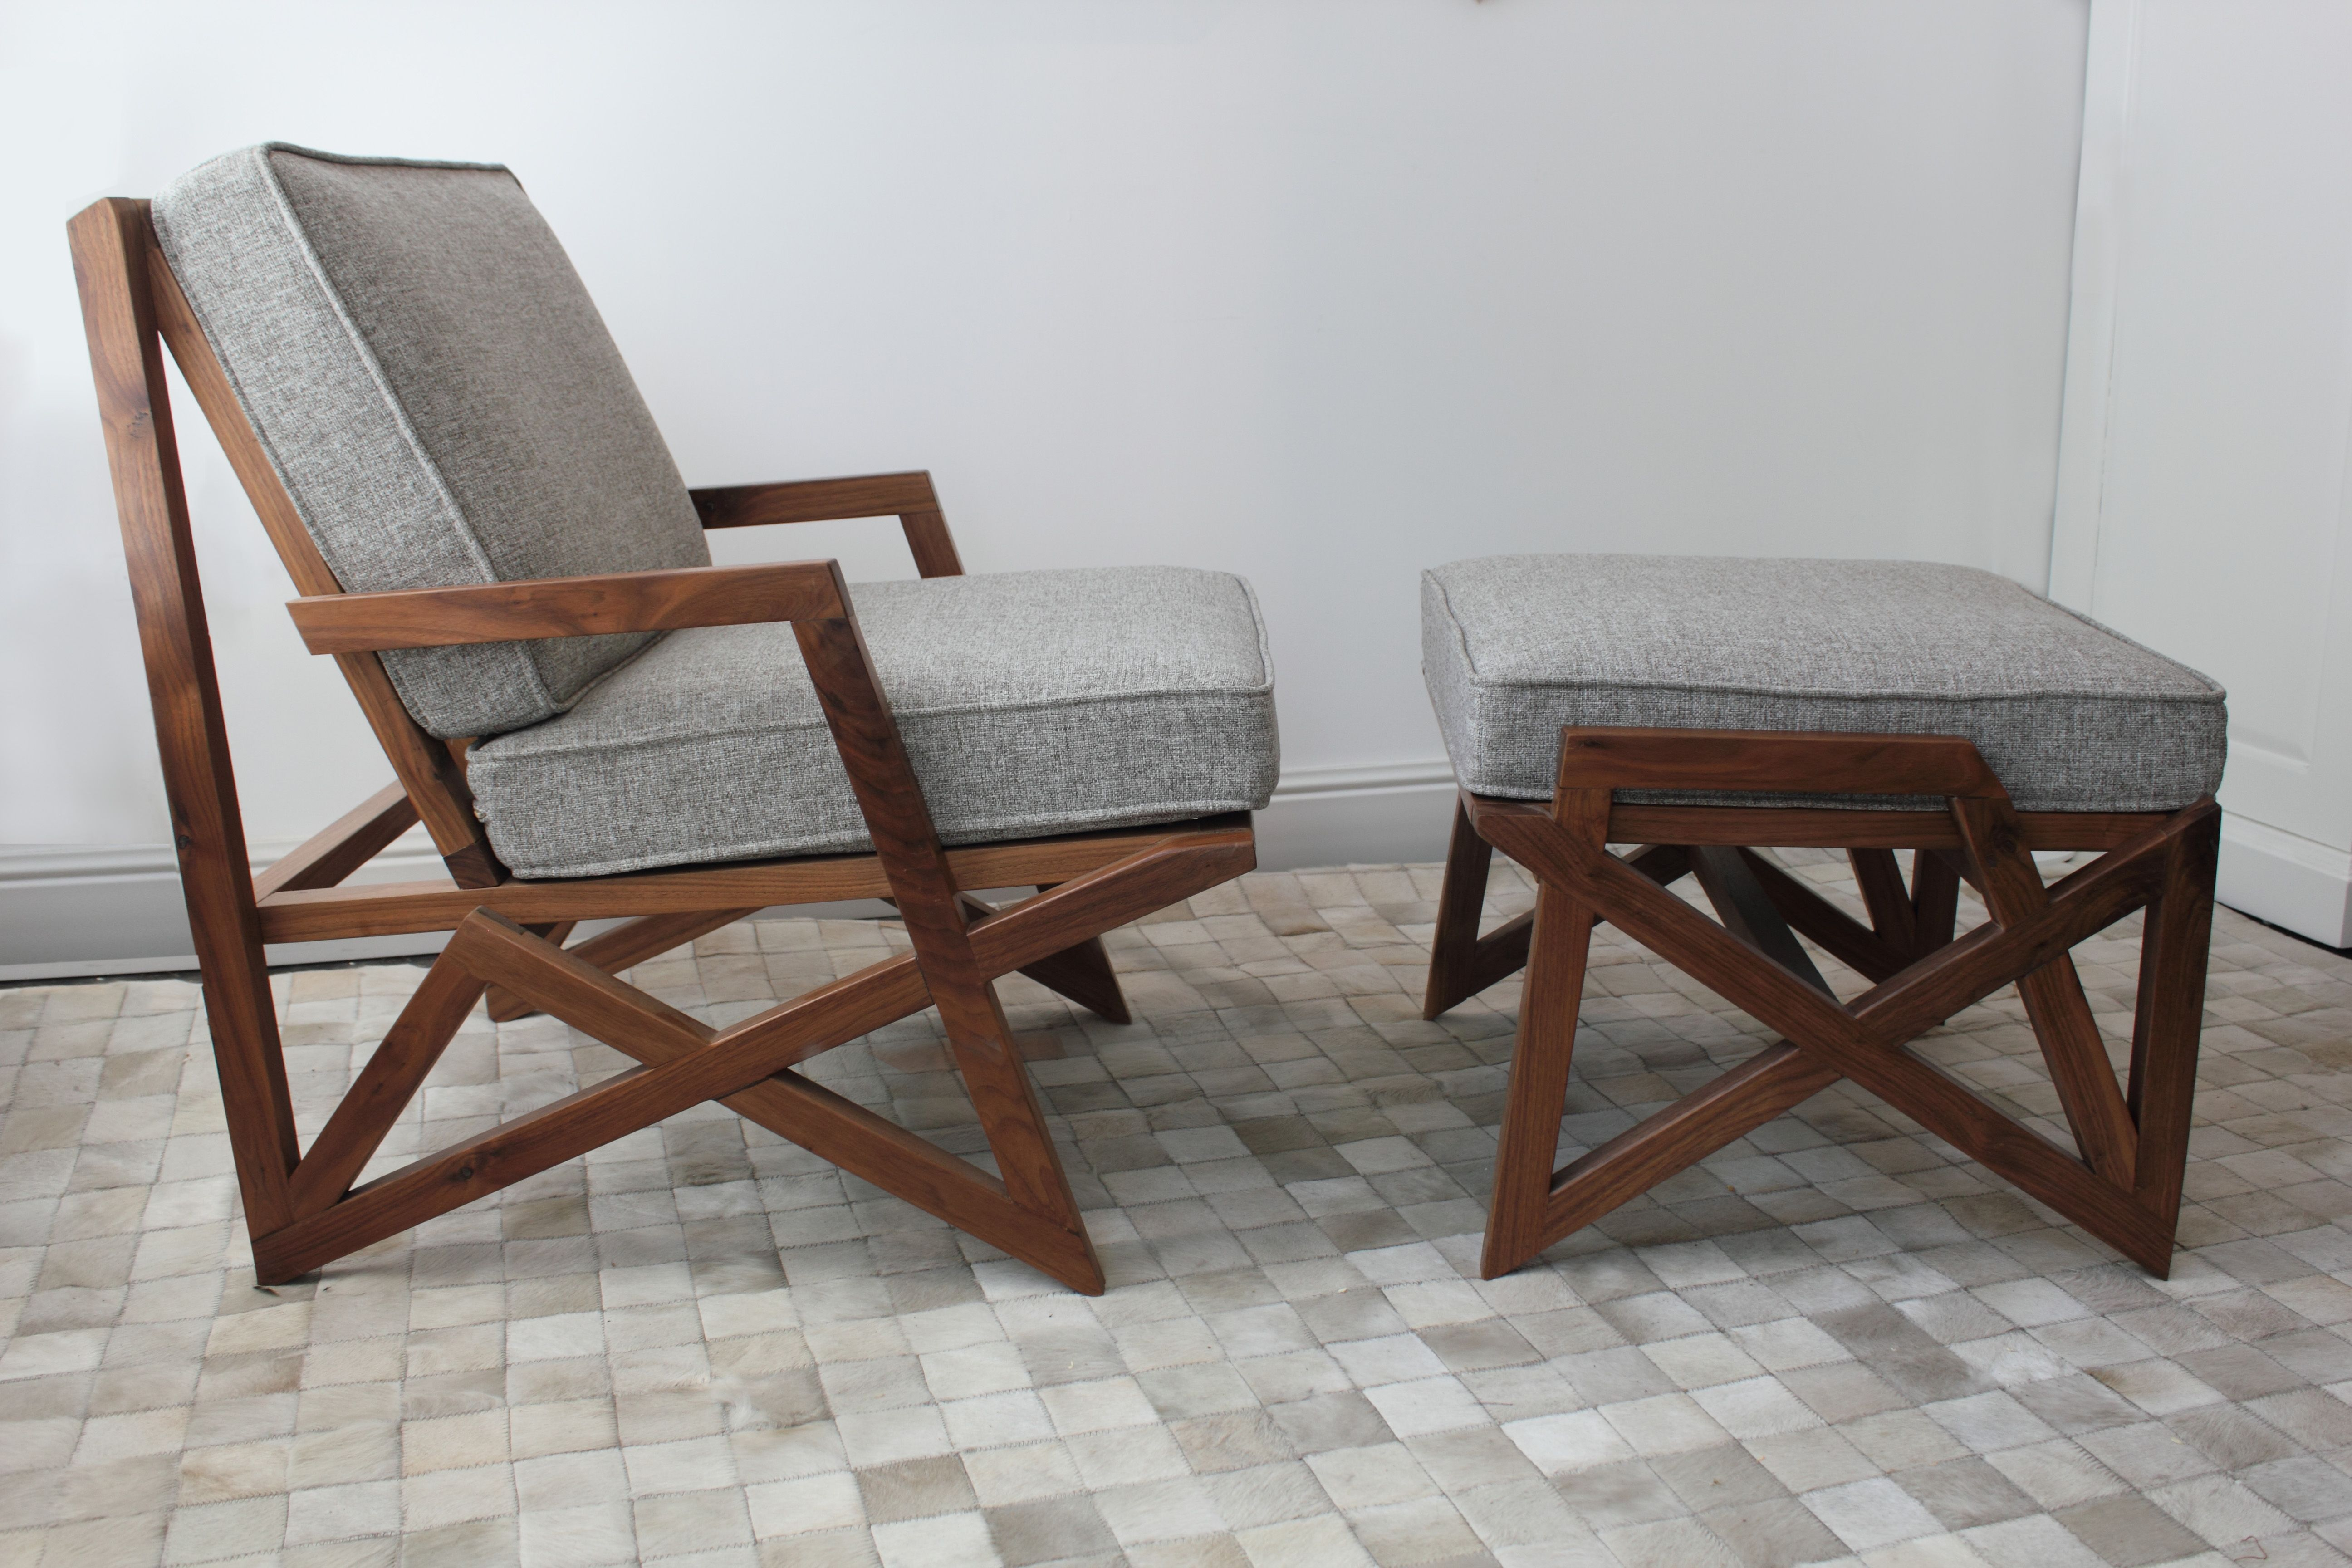 Foldable Wooden Sofa Set Natuzzi Editions Sanremo Leather Corner Recliner A Handmade Original Constellation Chair Designed By Gilad In Our Workshop Wood Furniture Amazing Natural